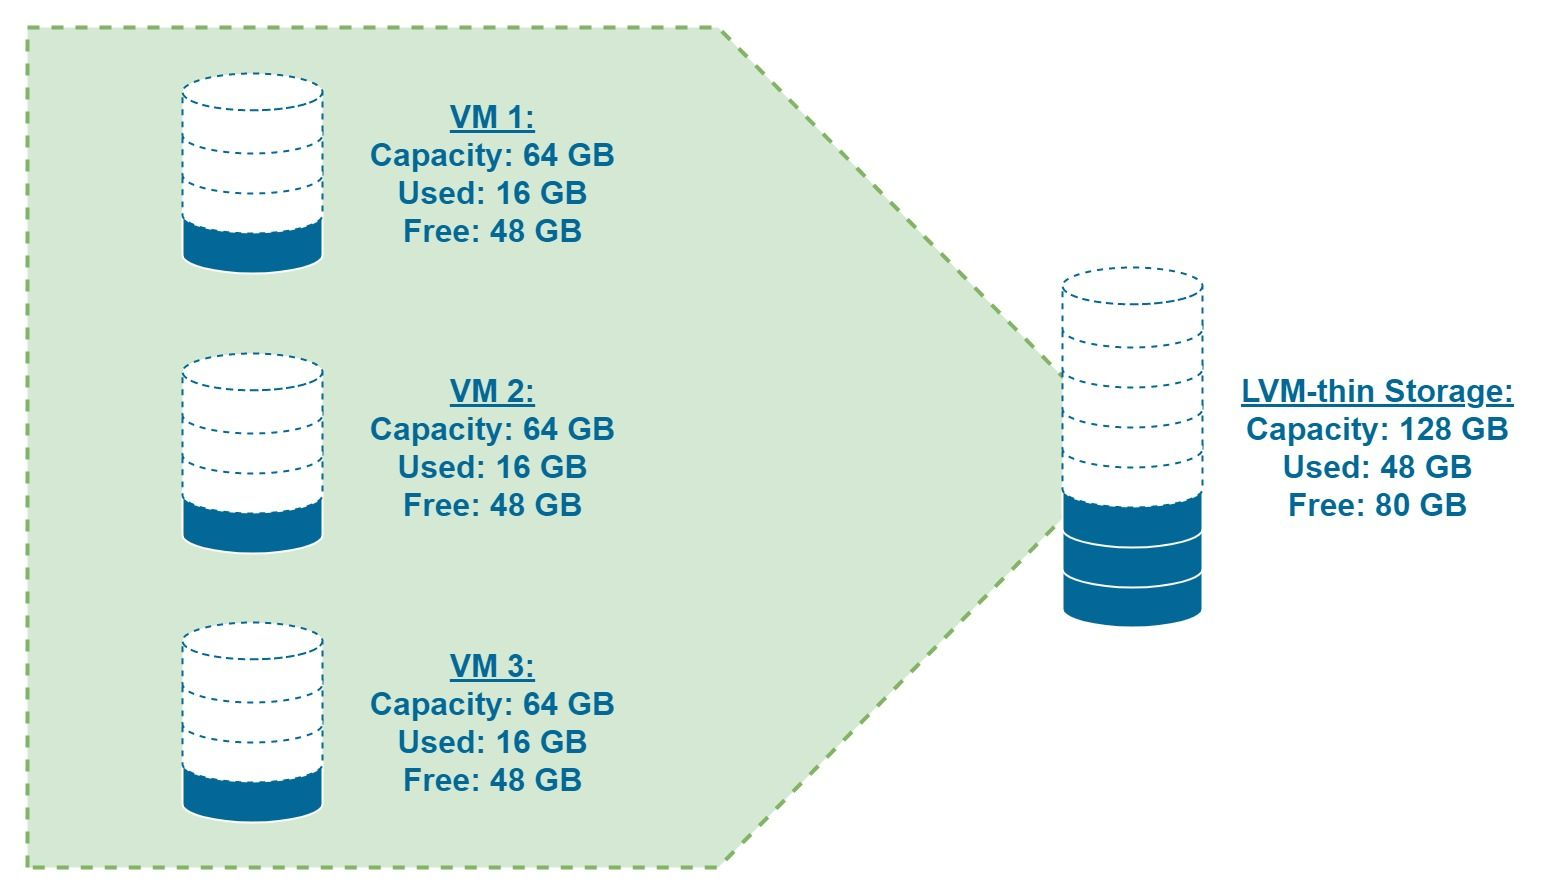 Simple diagram illustrating the concept of LVM thin provisioning